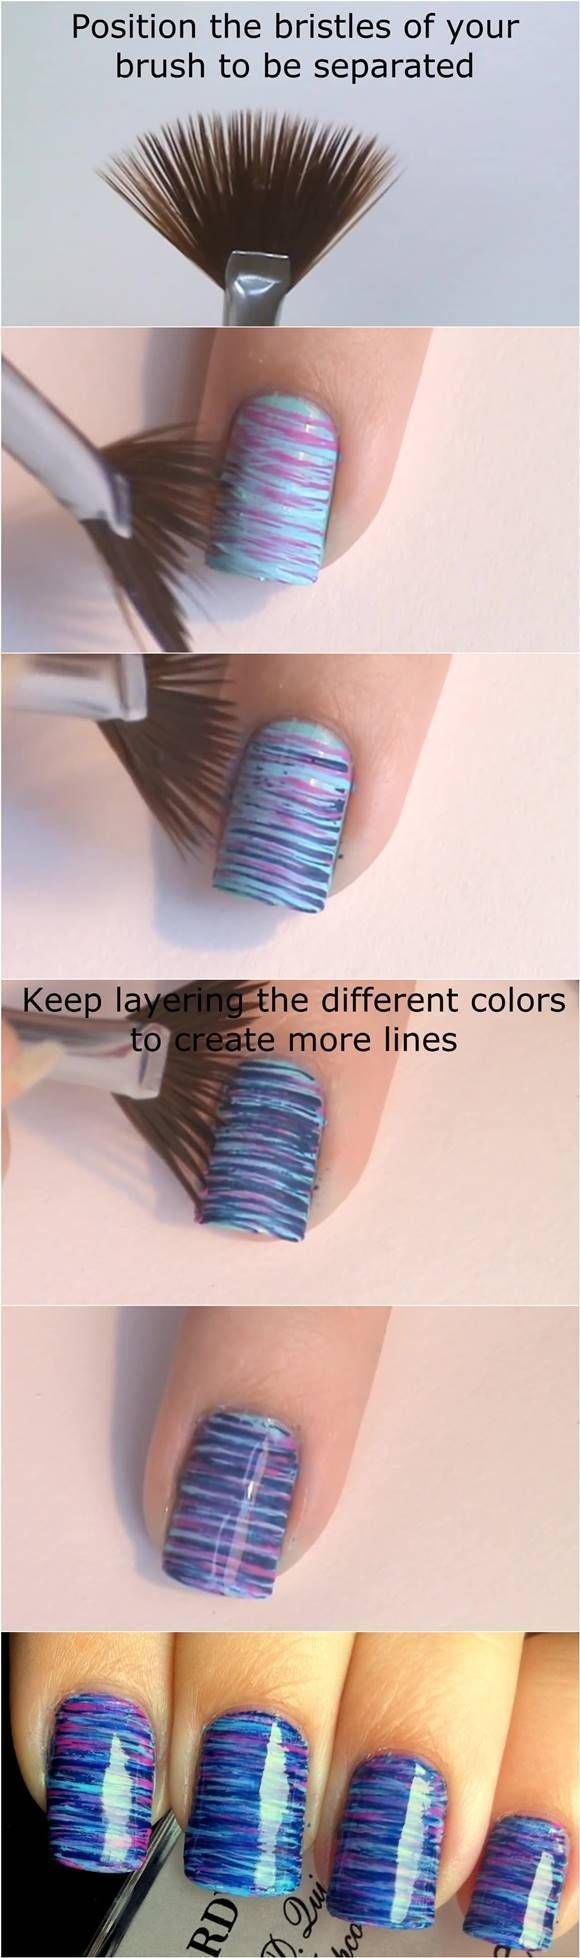 How to DIY Blue and Pink Fan Brush Striped Nail Art #fashion #beauty #nail_art(Fashion Diy Ideas)